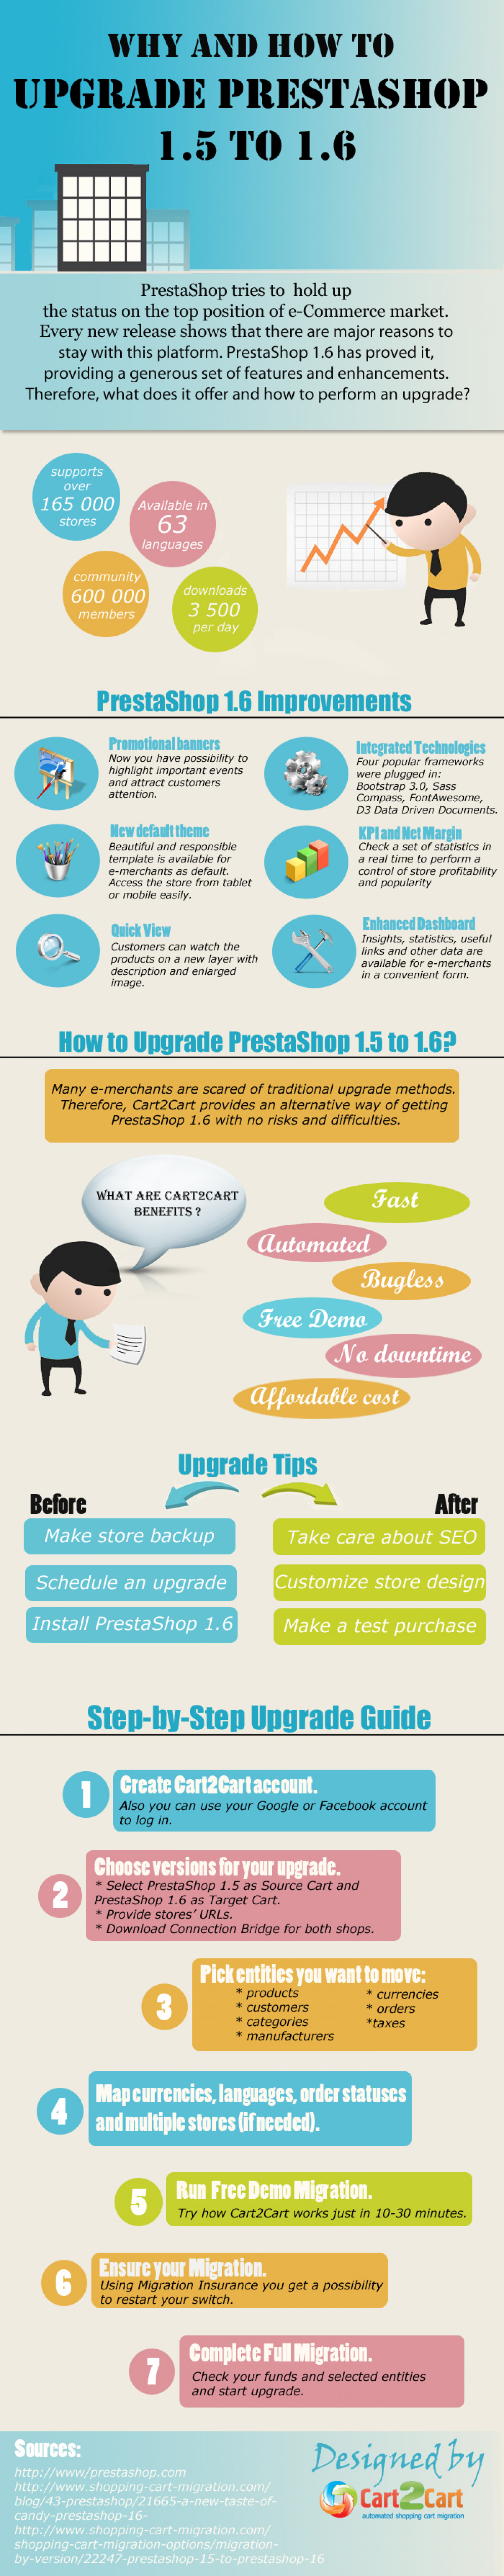 Why and How to Upgrade PrestaShop 1.5 to 1.6 Infographic